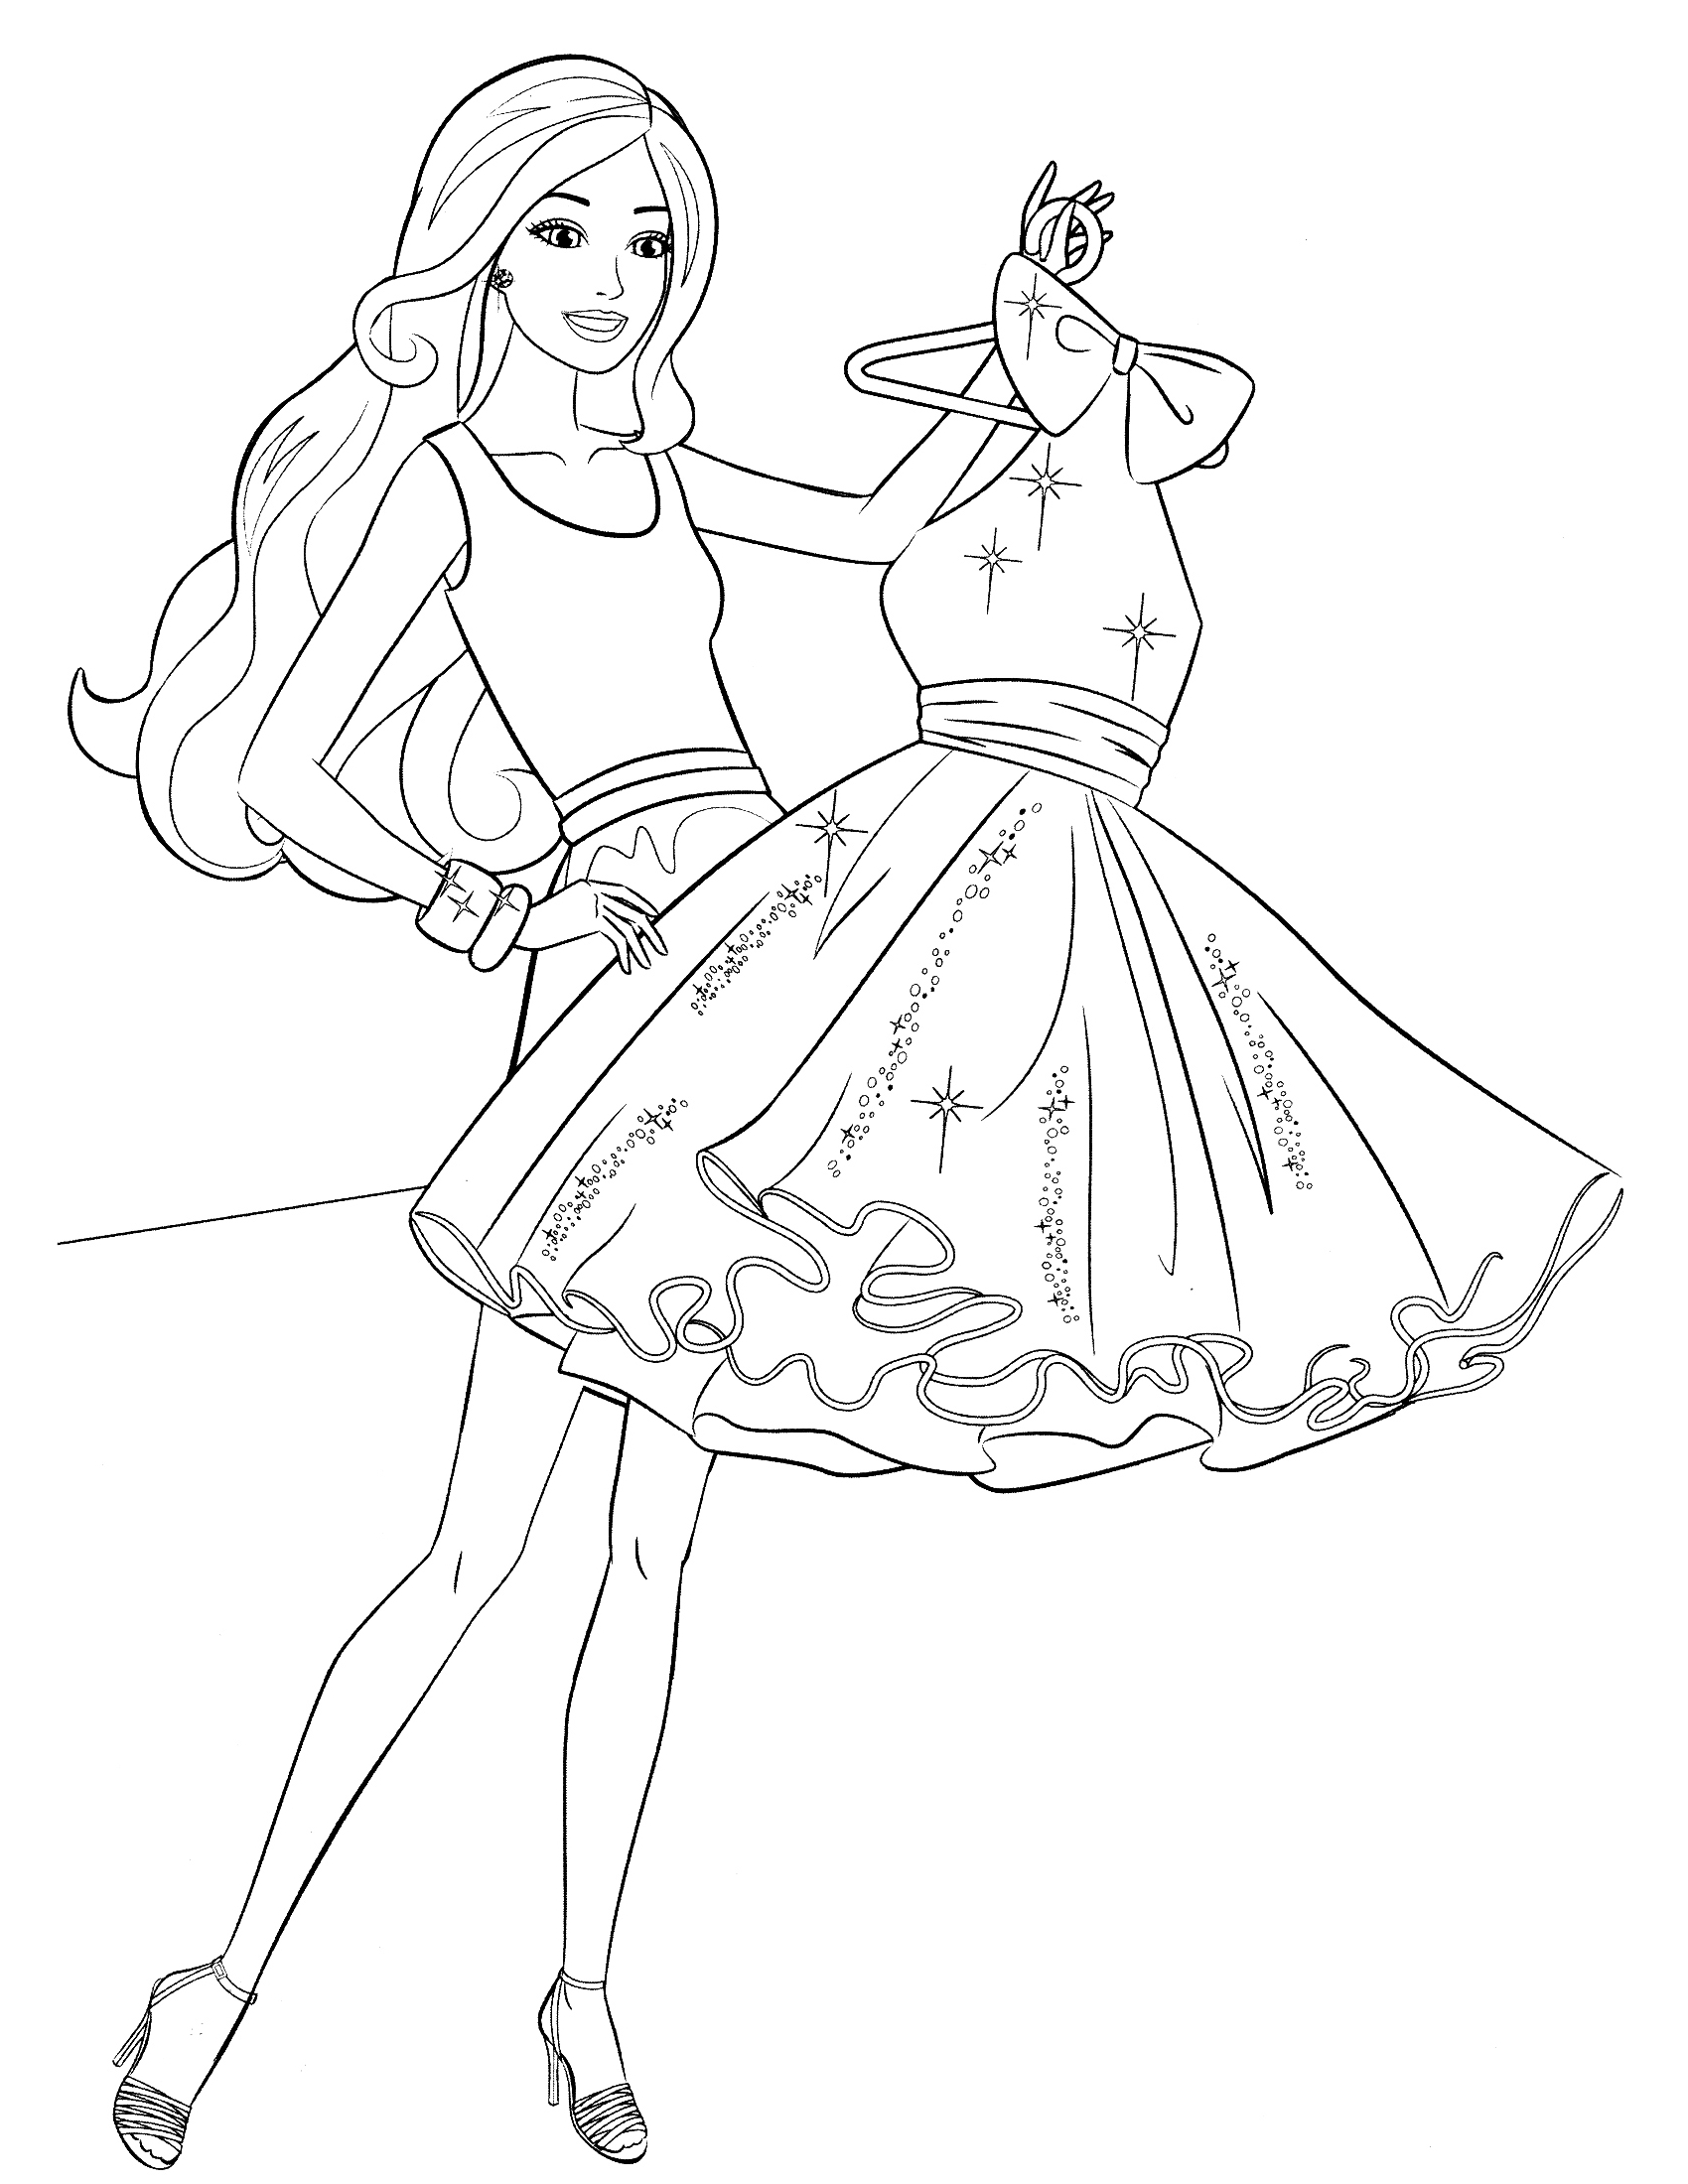 barbie dream house coloring pages dream house coloring pages at getcoloringscom free barbie pages house dream coloring